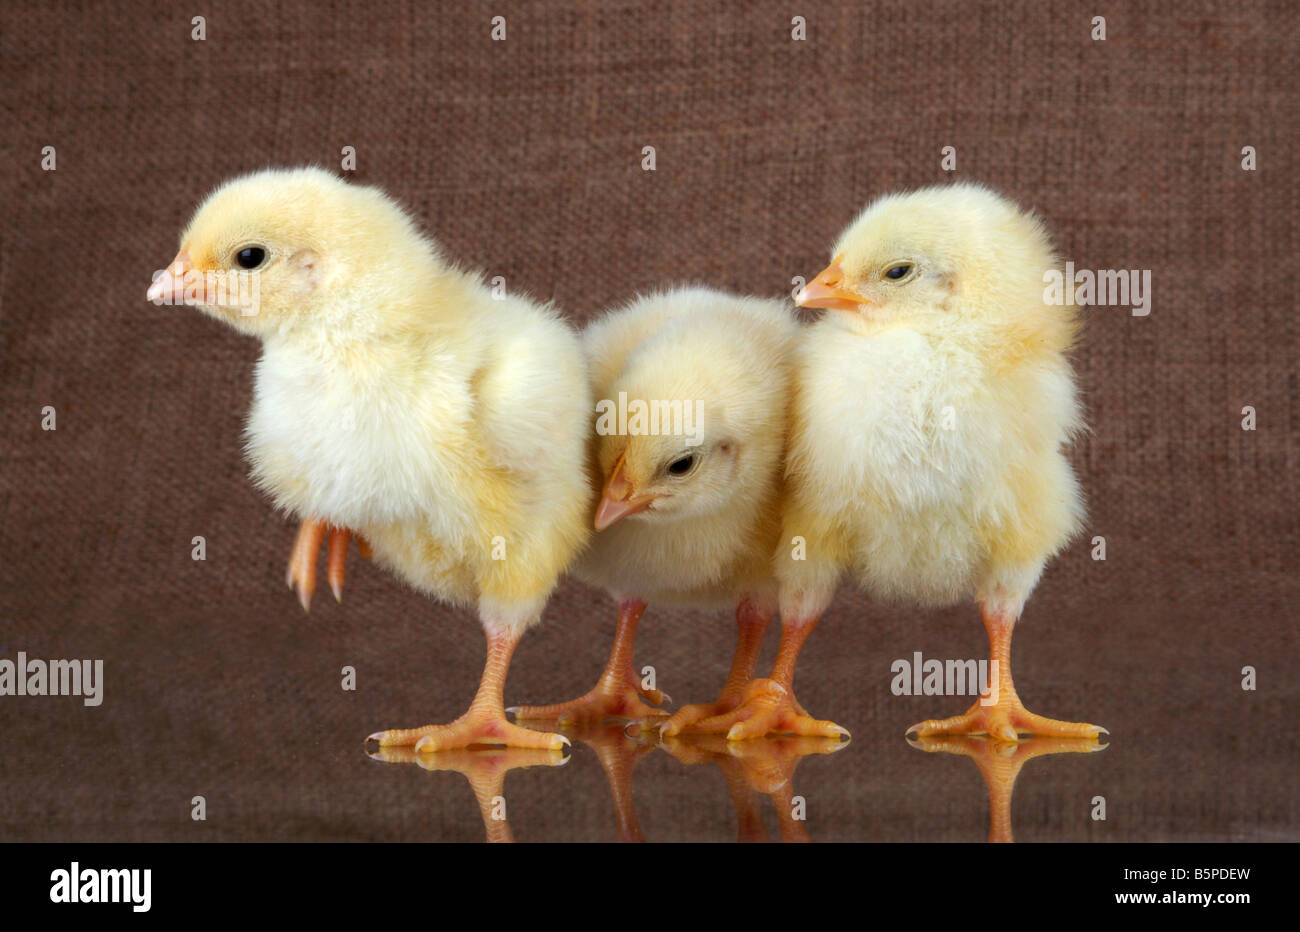 Three small chickens are engaged in private affairs - Stock Image